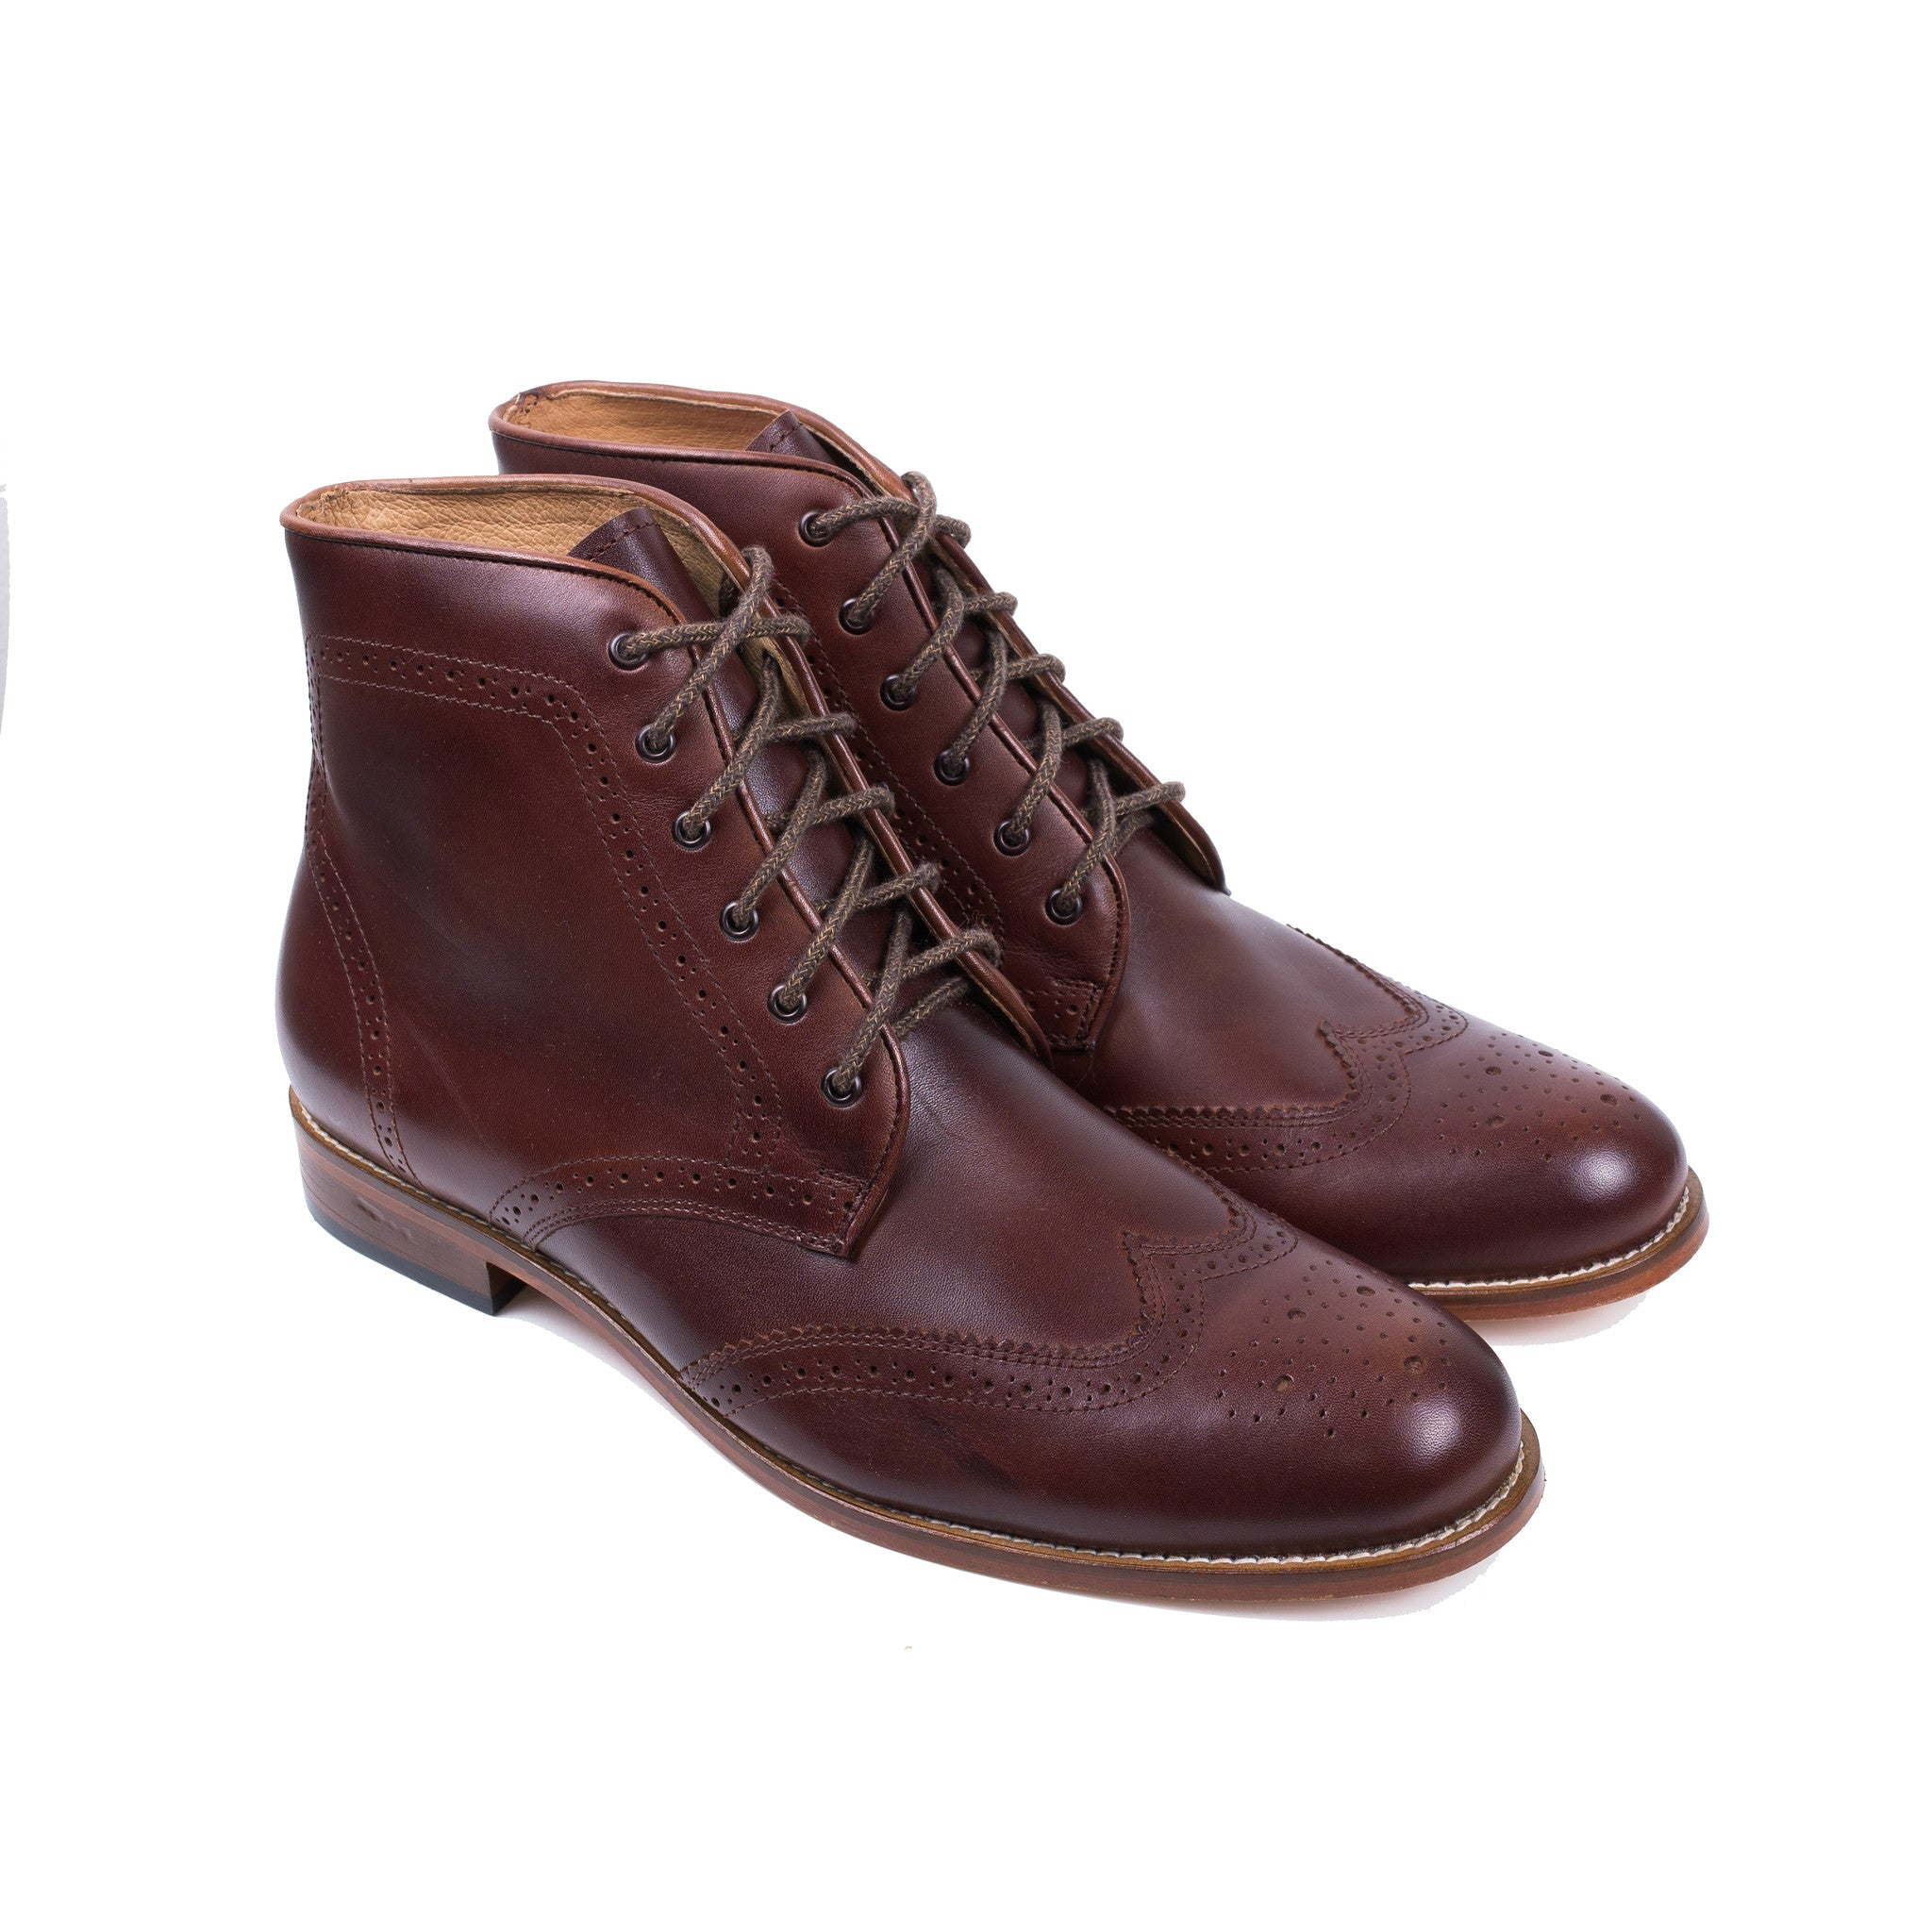 Wingtip Boot in Chocolate